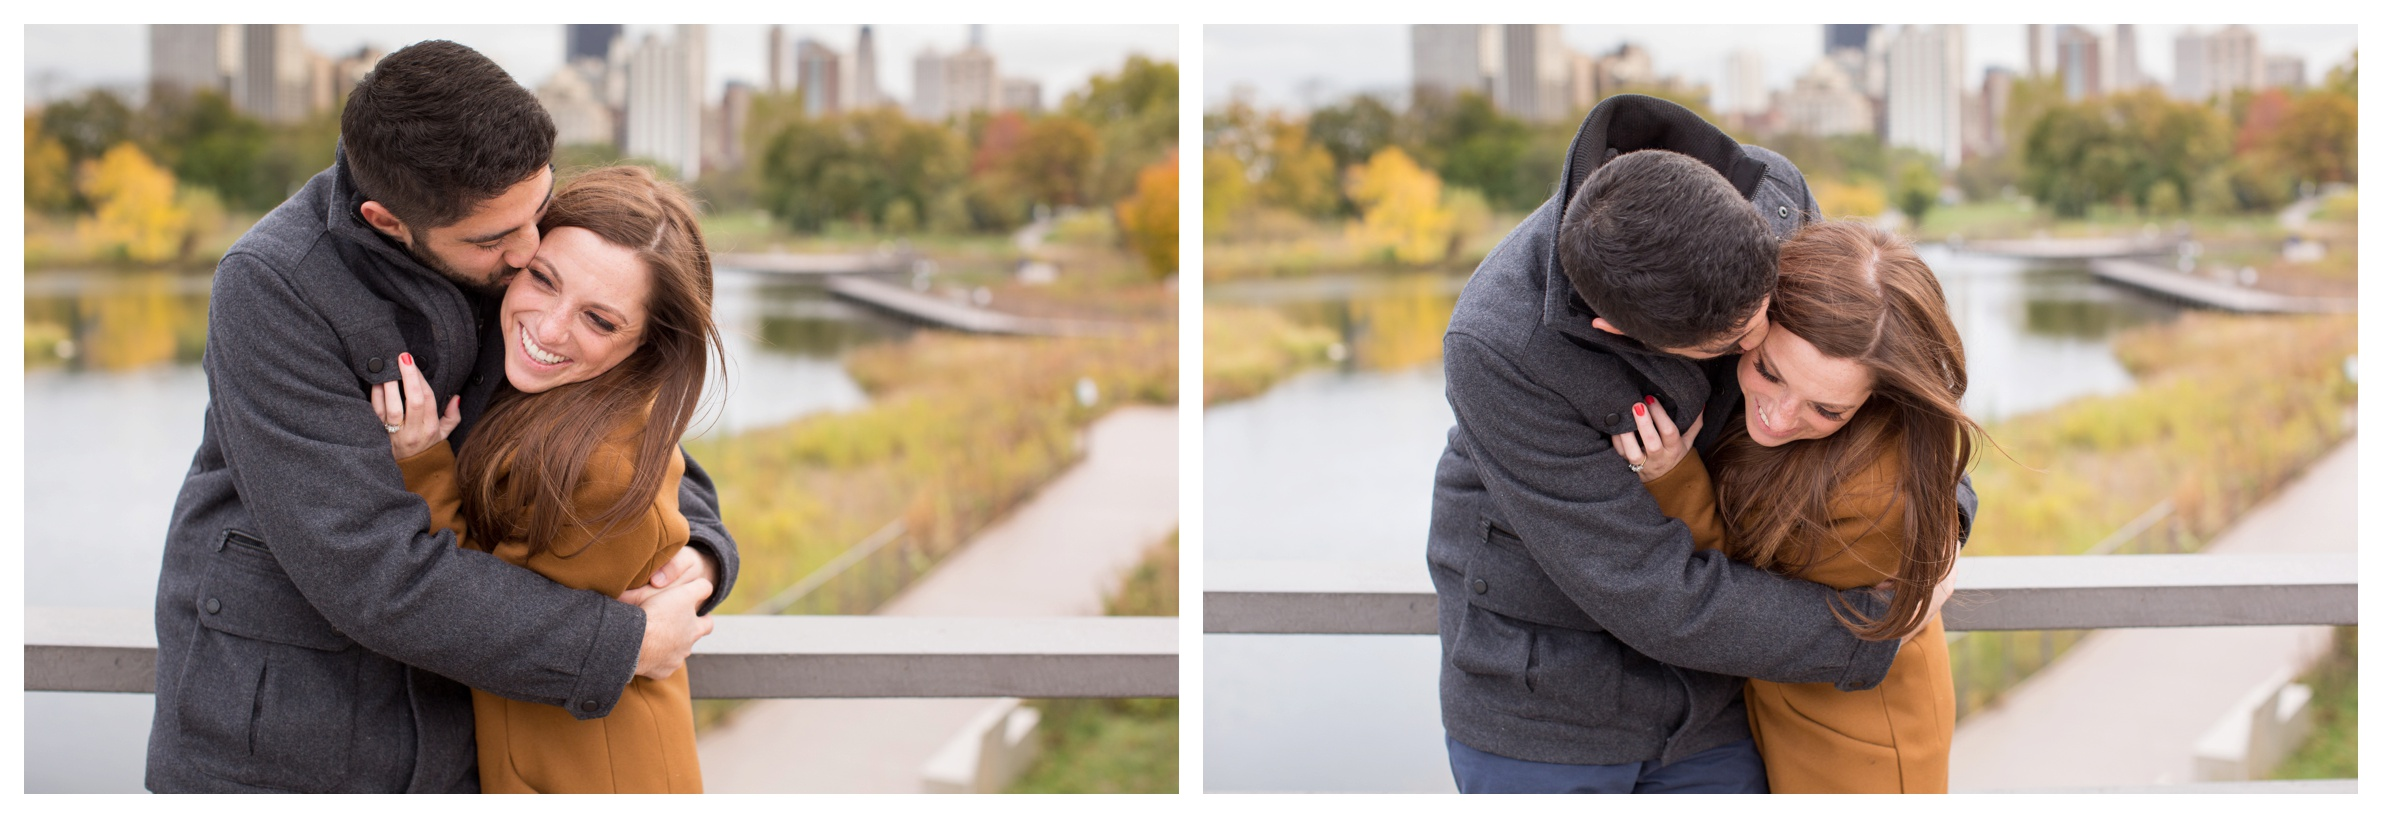 chicago-engagement-photographer-_0001.jpg